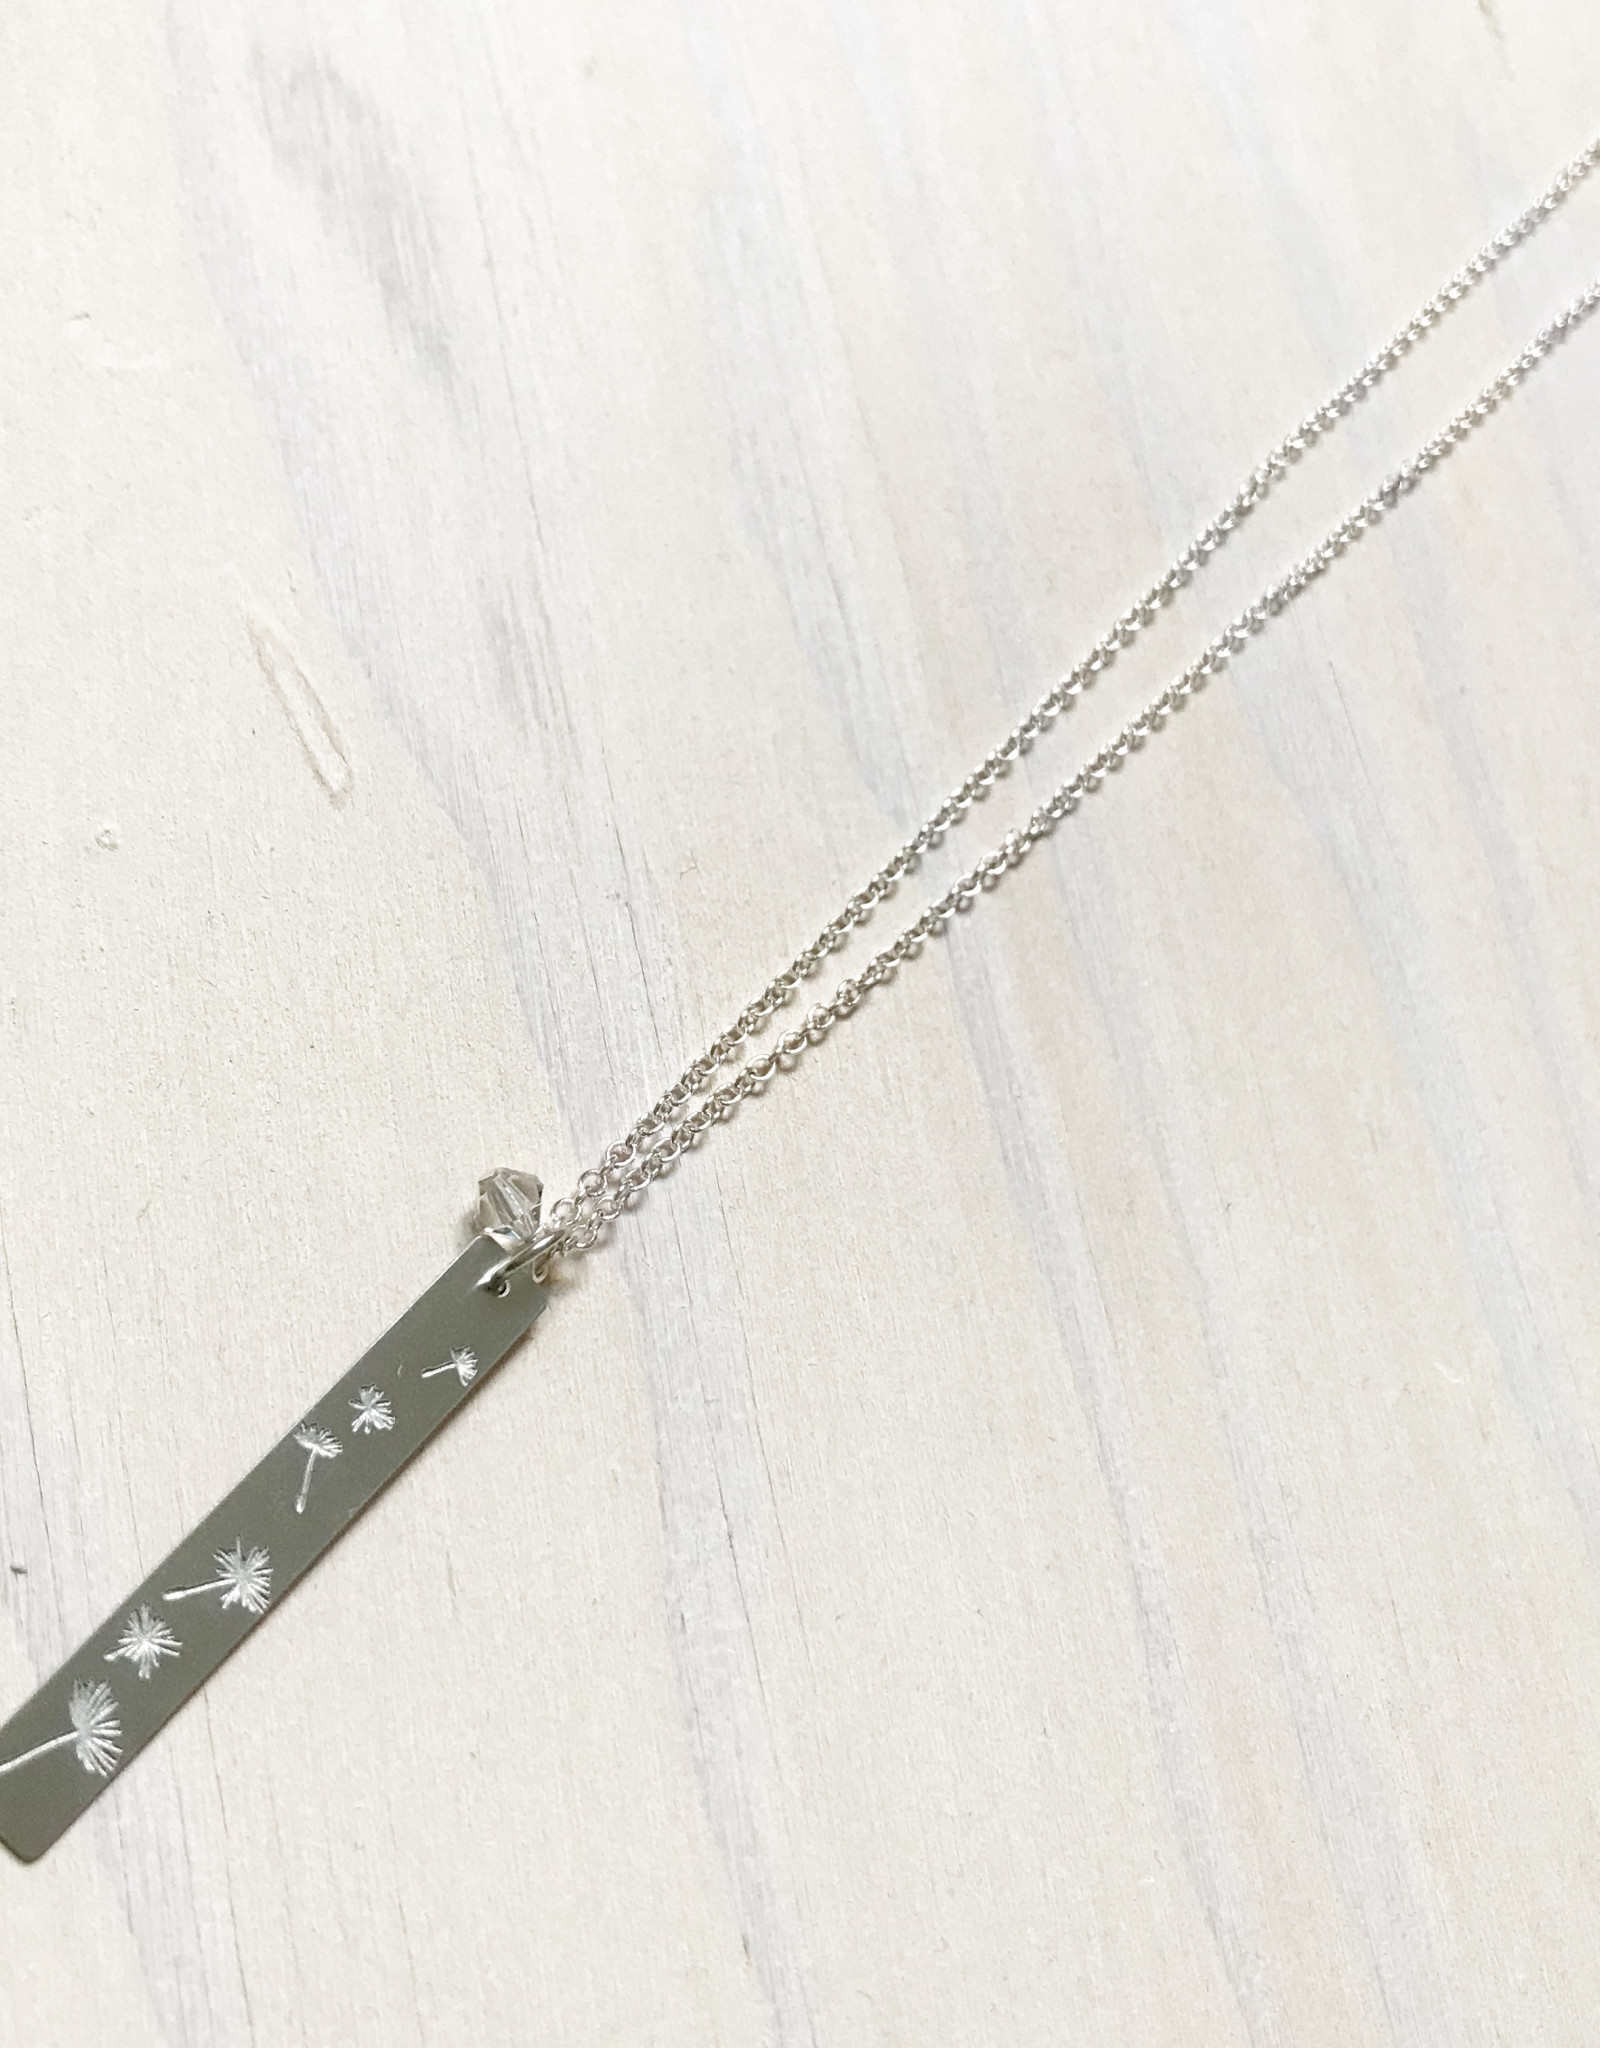 Devil May Wear Dandelion Fluff Necklace, Silver Plated, Solid Silver Chain